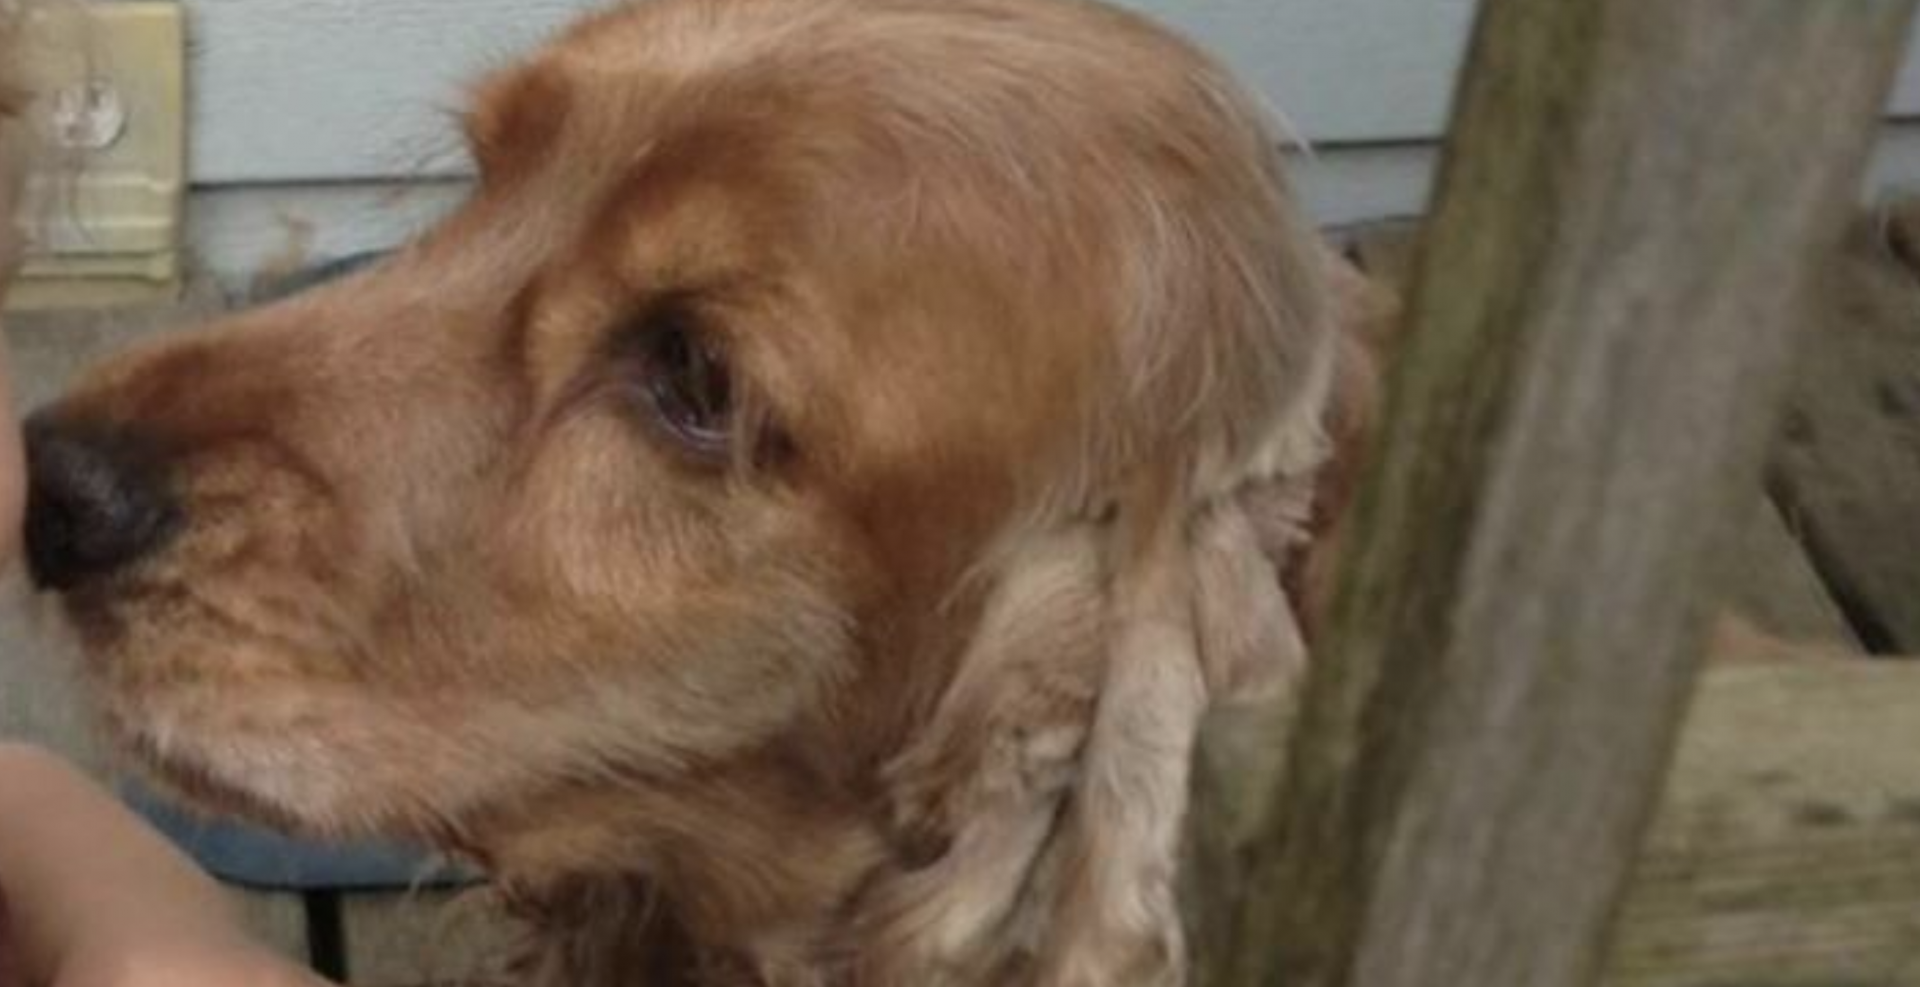 16-year-old English Cocker Spaniel stolen in Vancouver on weekend: VPD